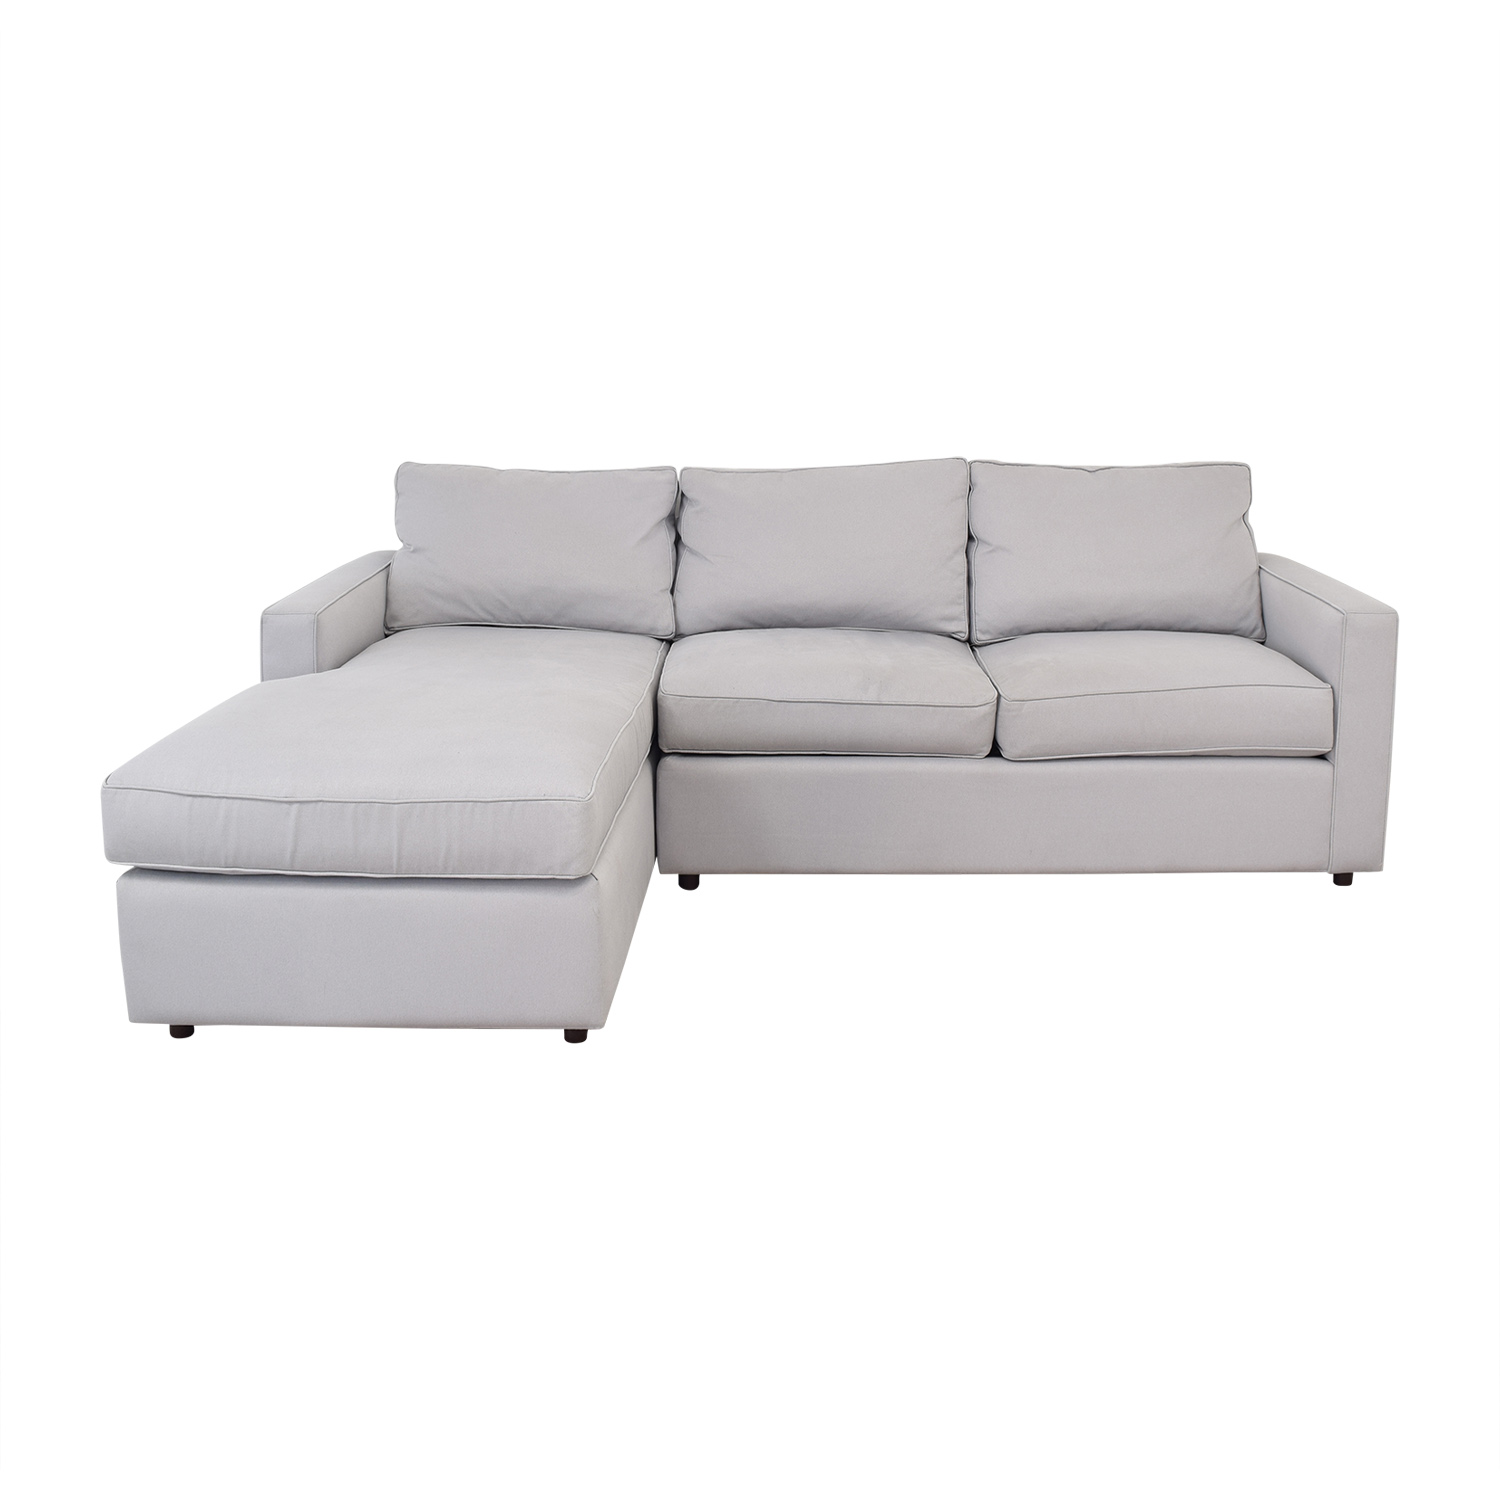 shop Room & Board Room & Board Sofa with Chaise online